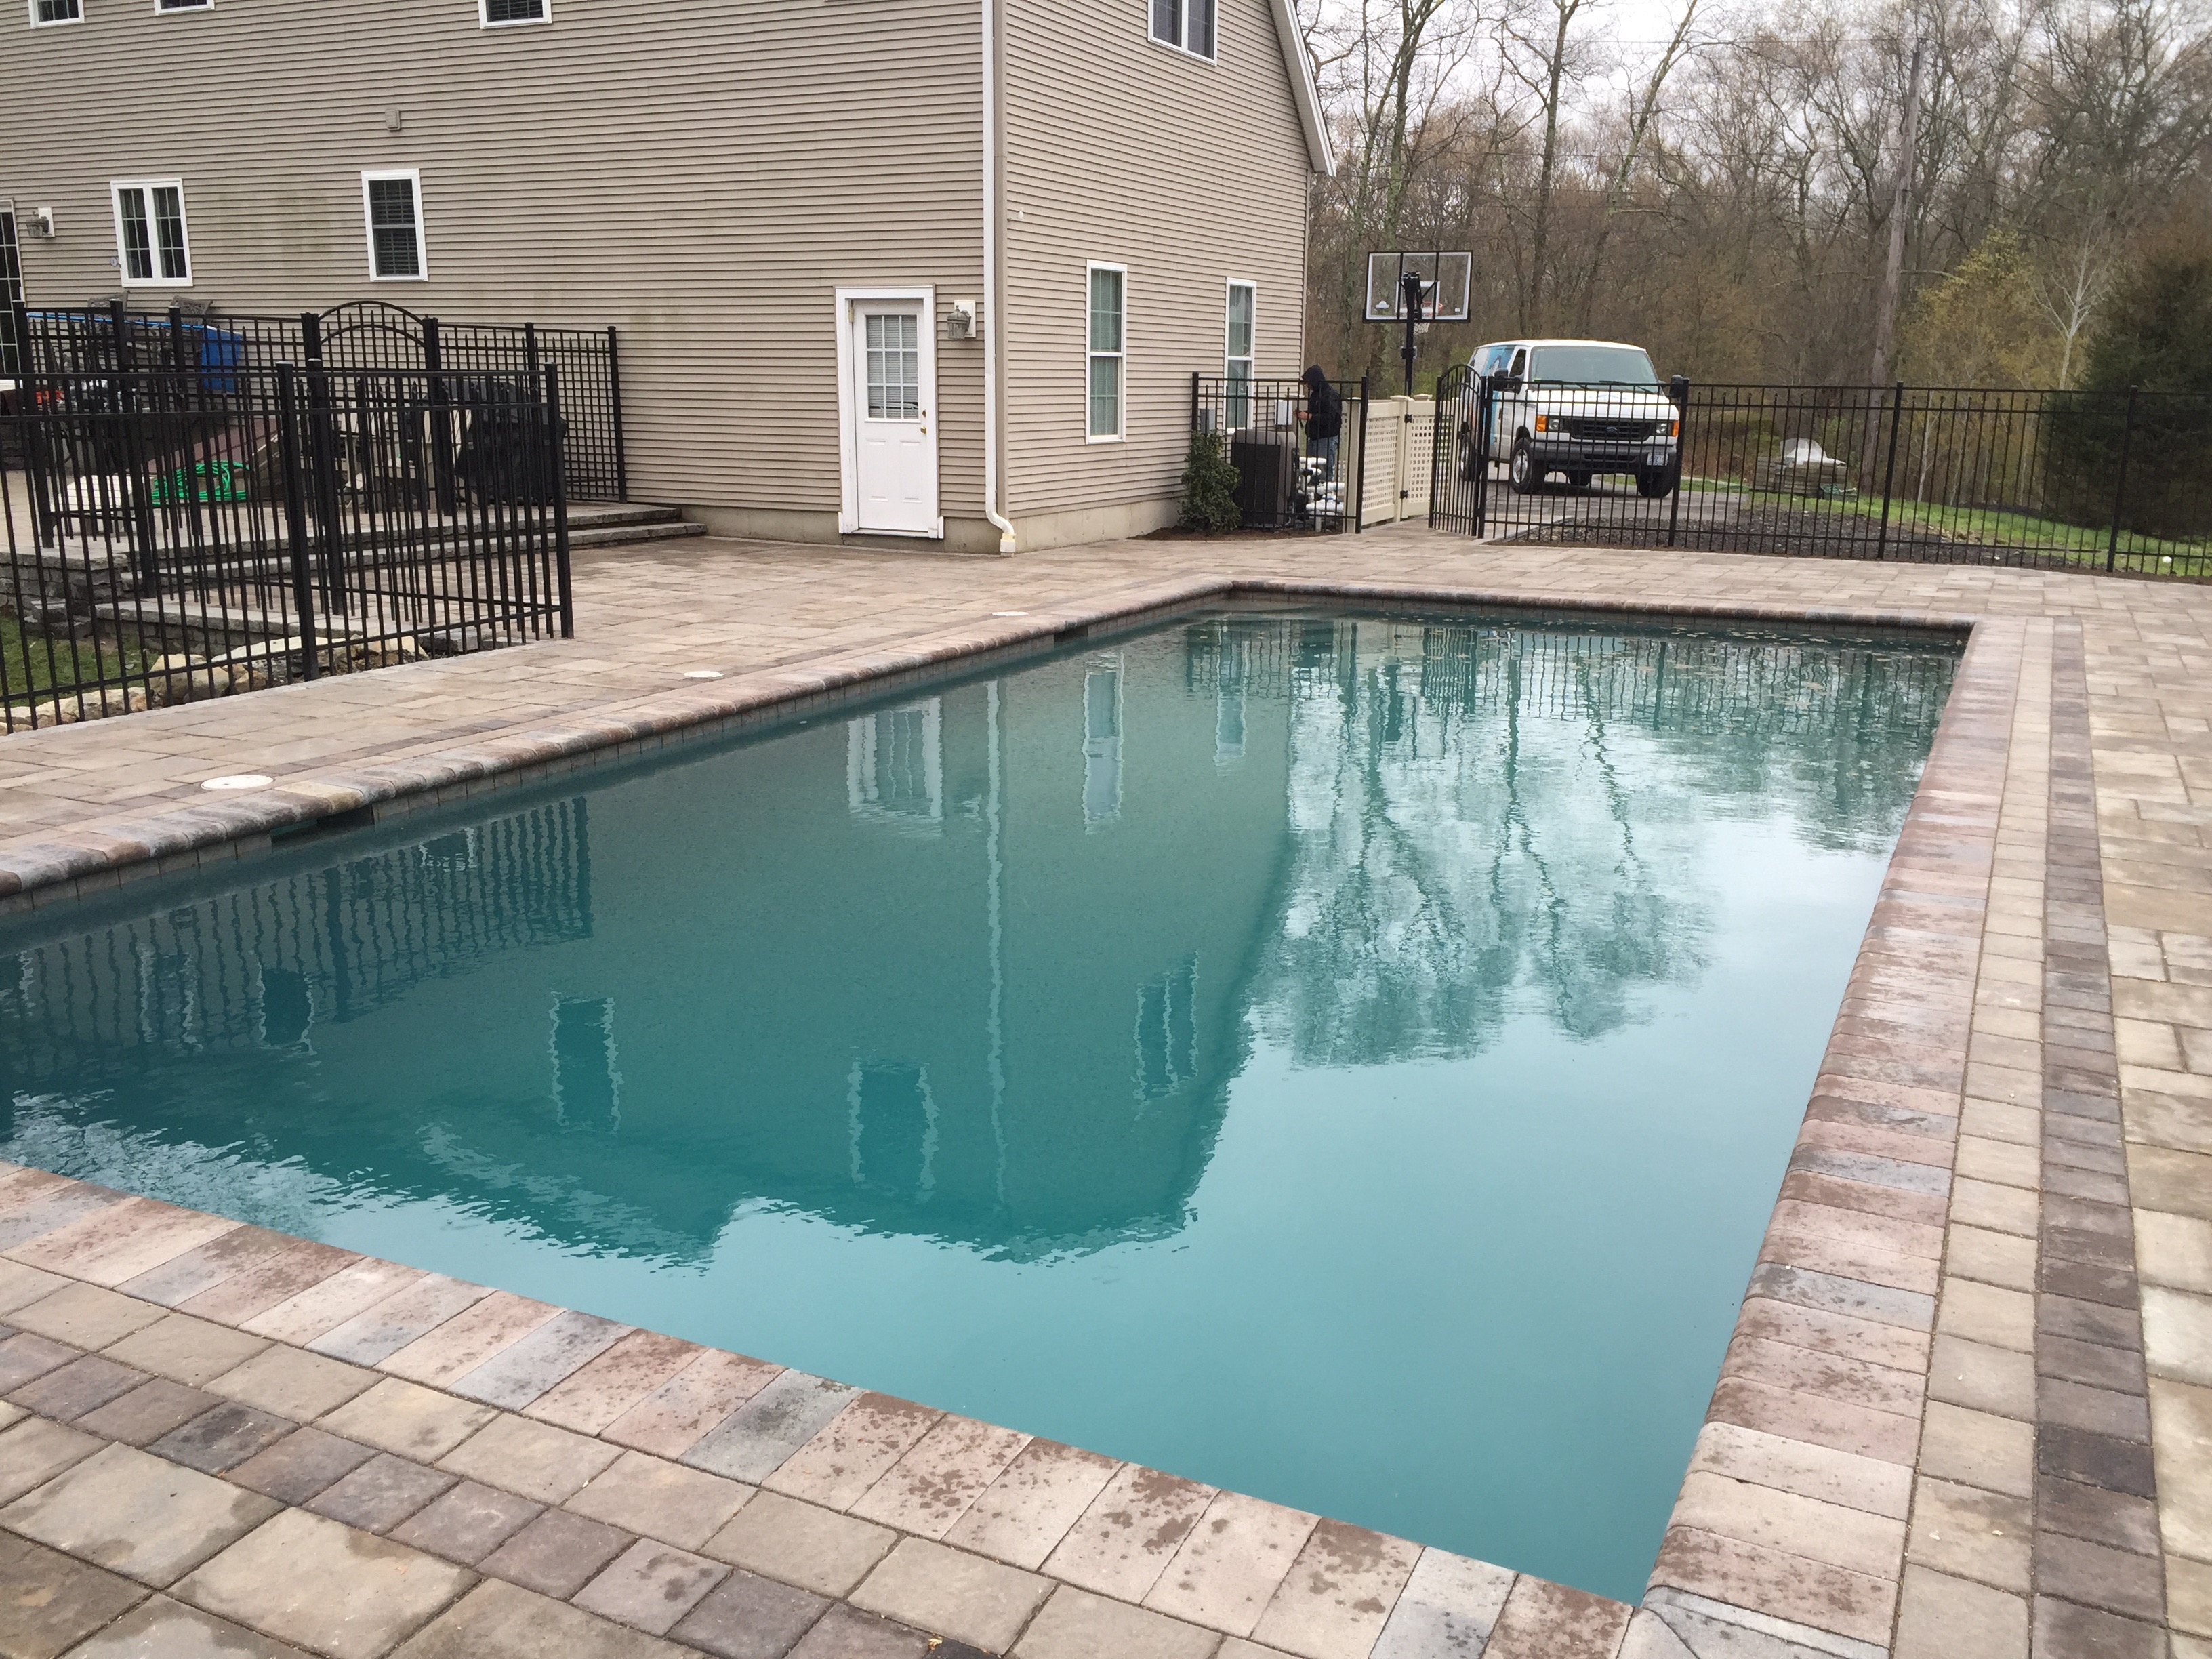 This Custom Built Gunite Pool And Patio By Elvio And Sons Was Completed In  2016. The Patio Is Constructed With Unilock Beacon Hill Pavers.